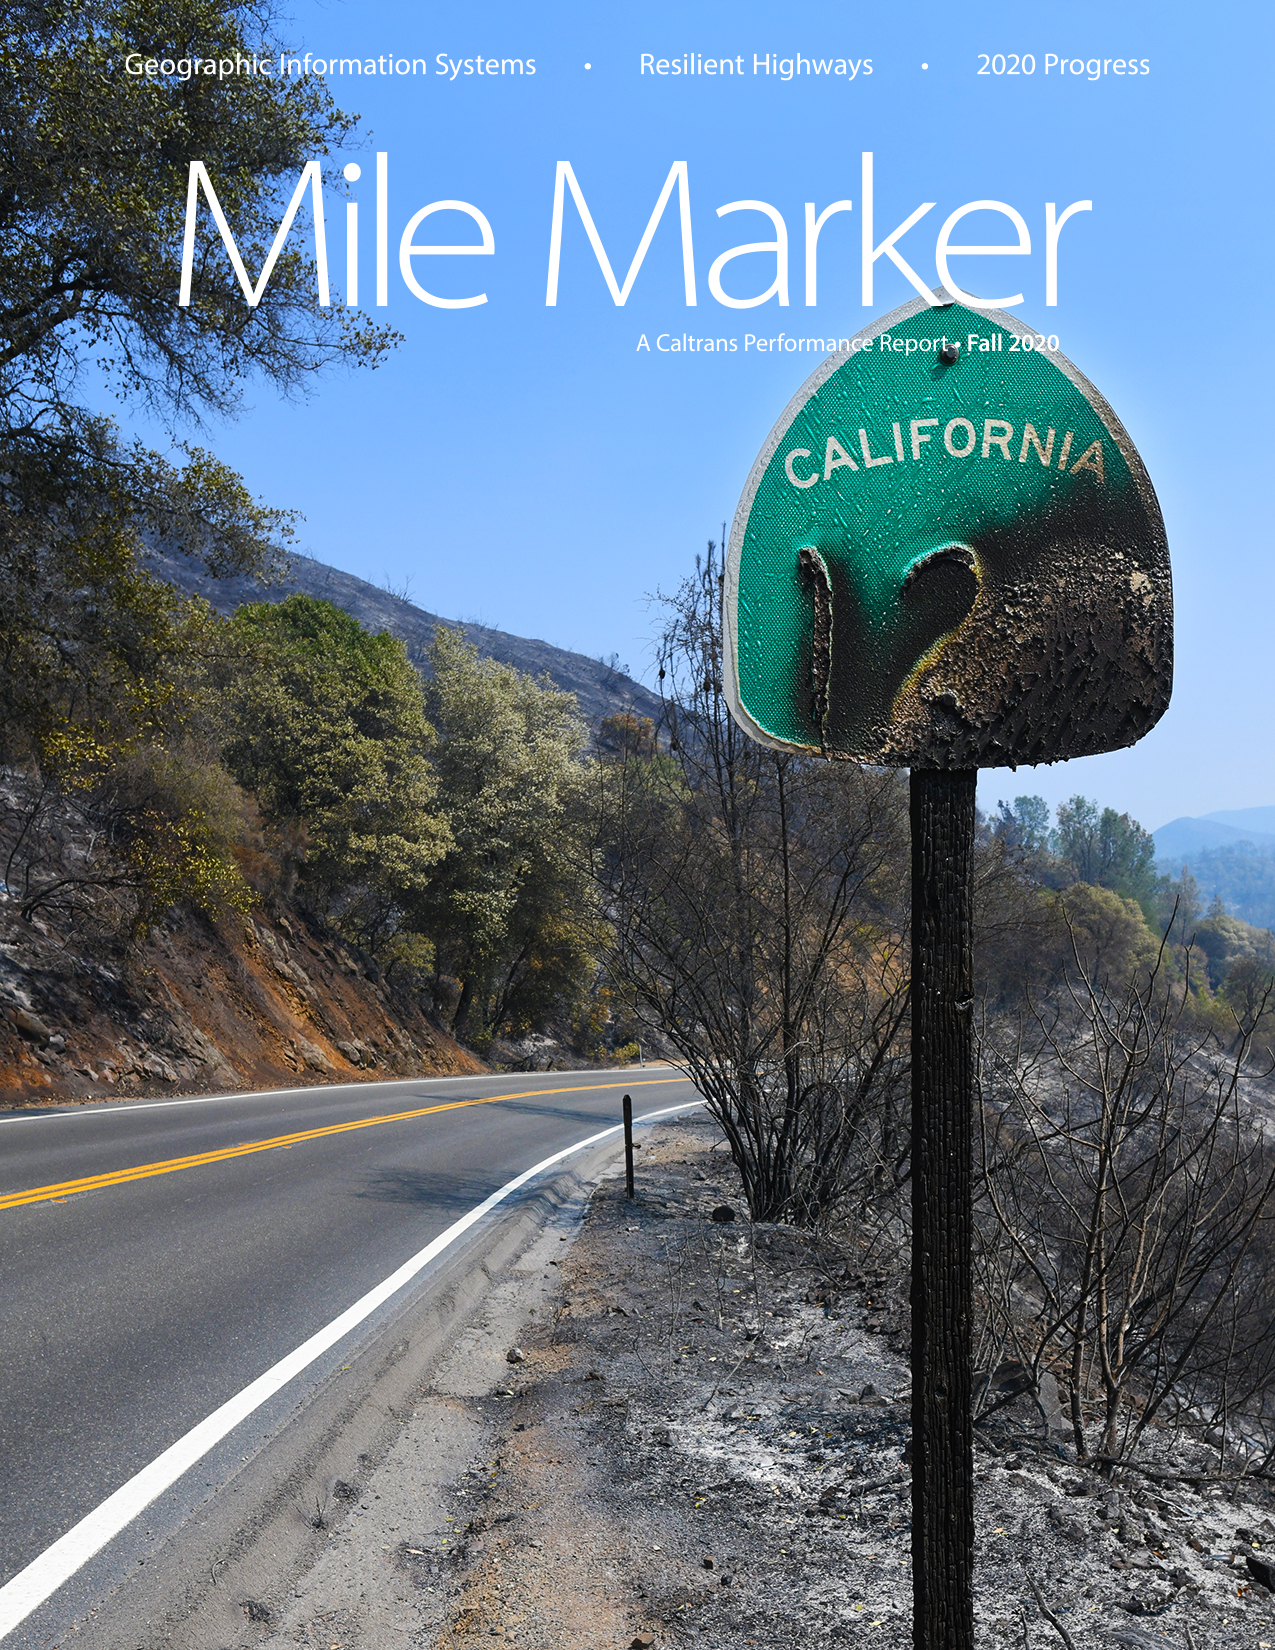 Cover image of the Summer 2020 Mile Marker showing Highway 128 and fire damage done to the roadway bushes and a highway marker in the foreground.